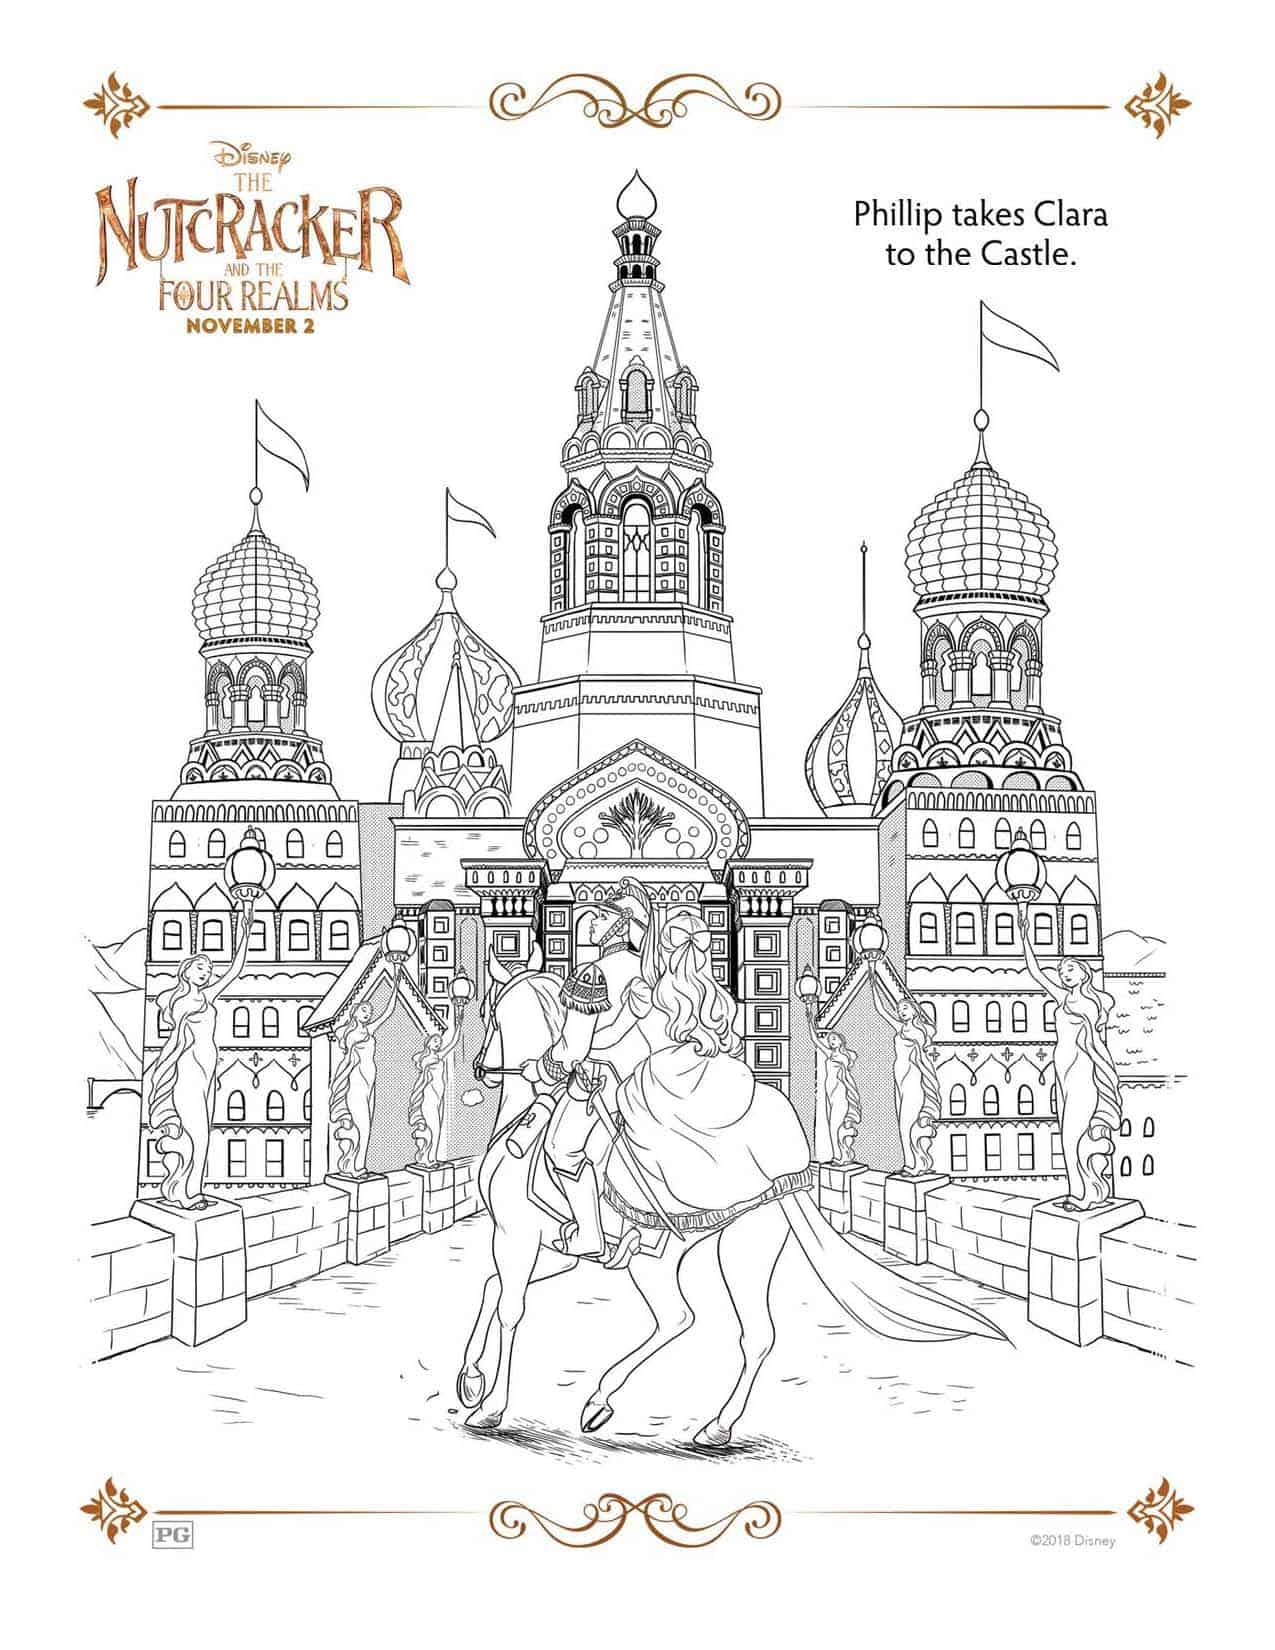 The Nutcracker And The Four Realms Free Printable